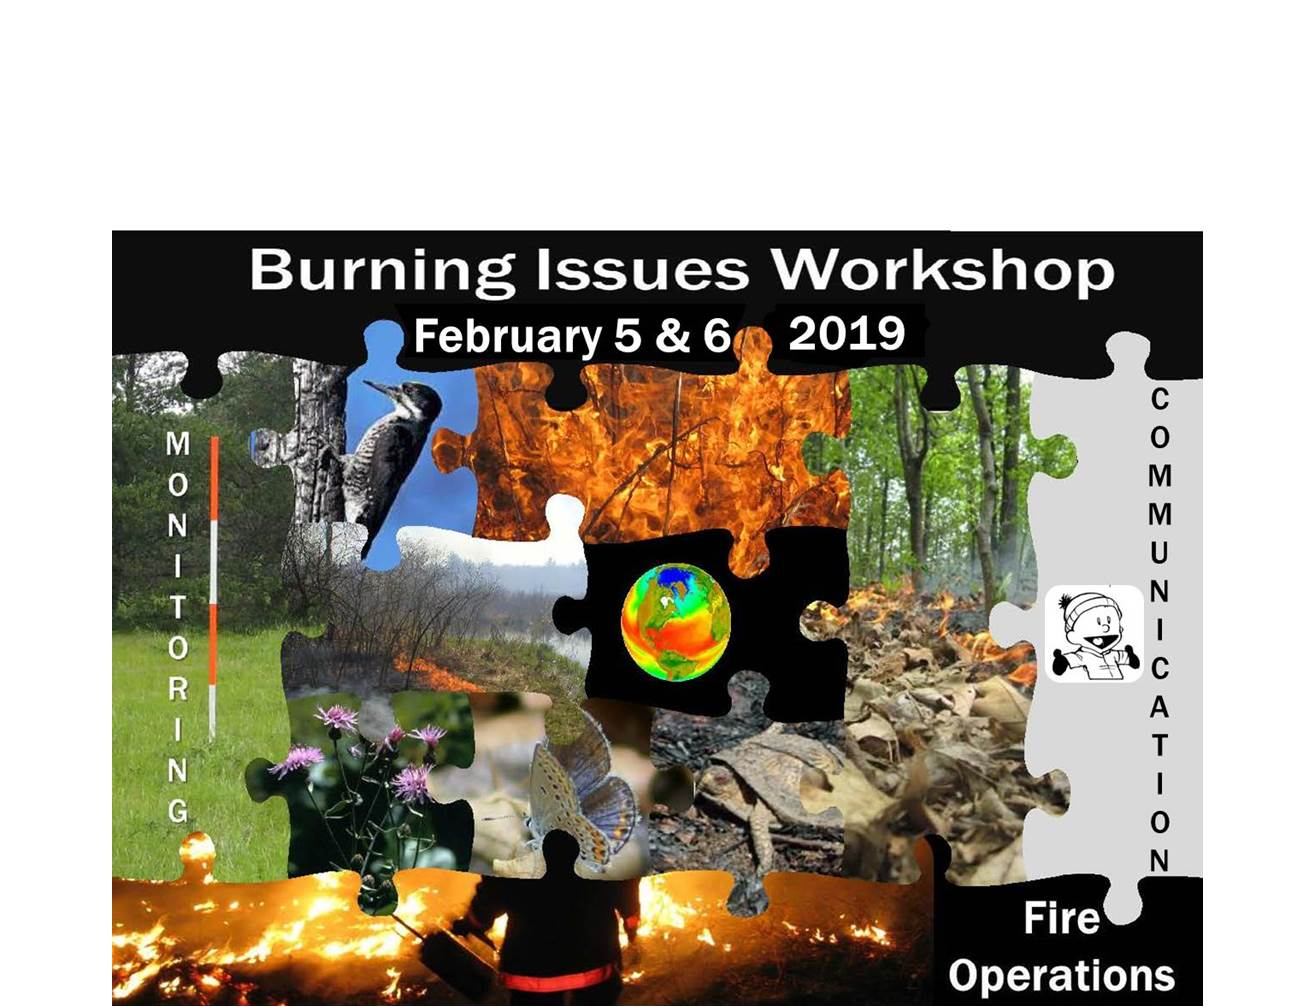 Fifth Annual Burning Issues Workshop and Michigan Prescribed Fire Council Annual Meeting